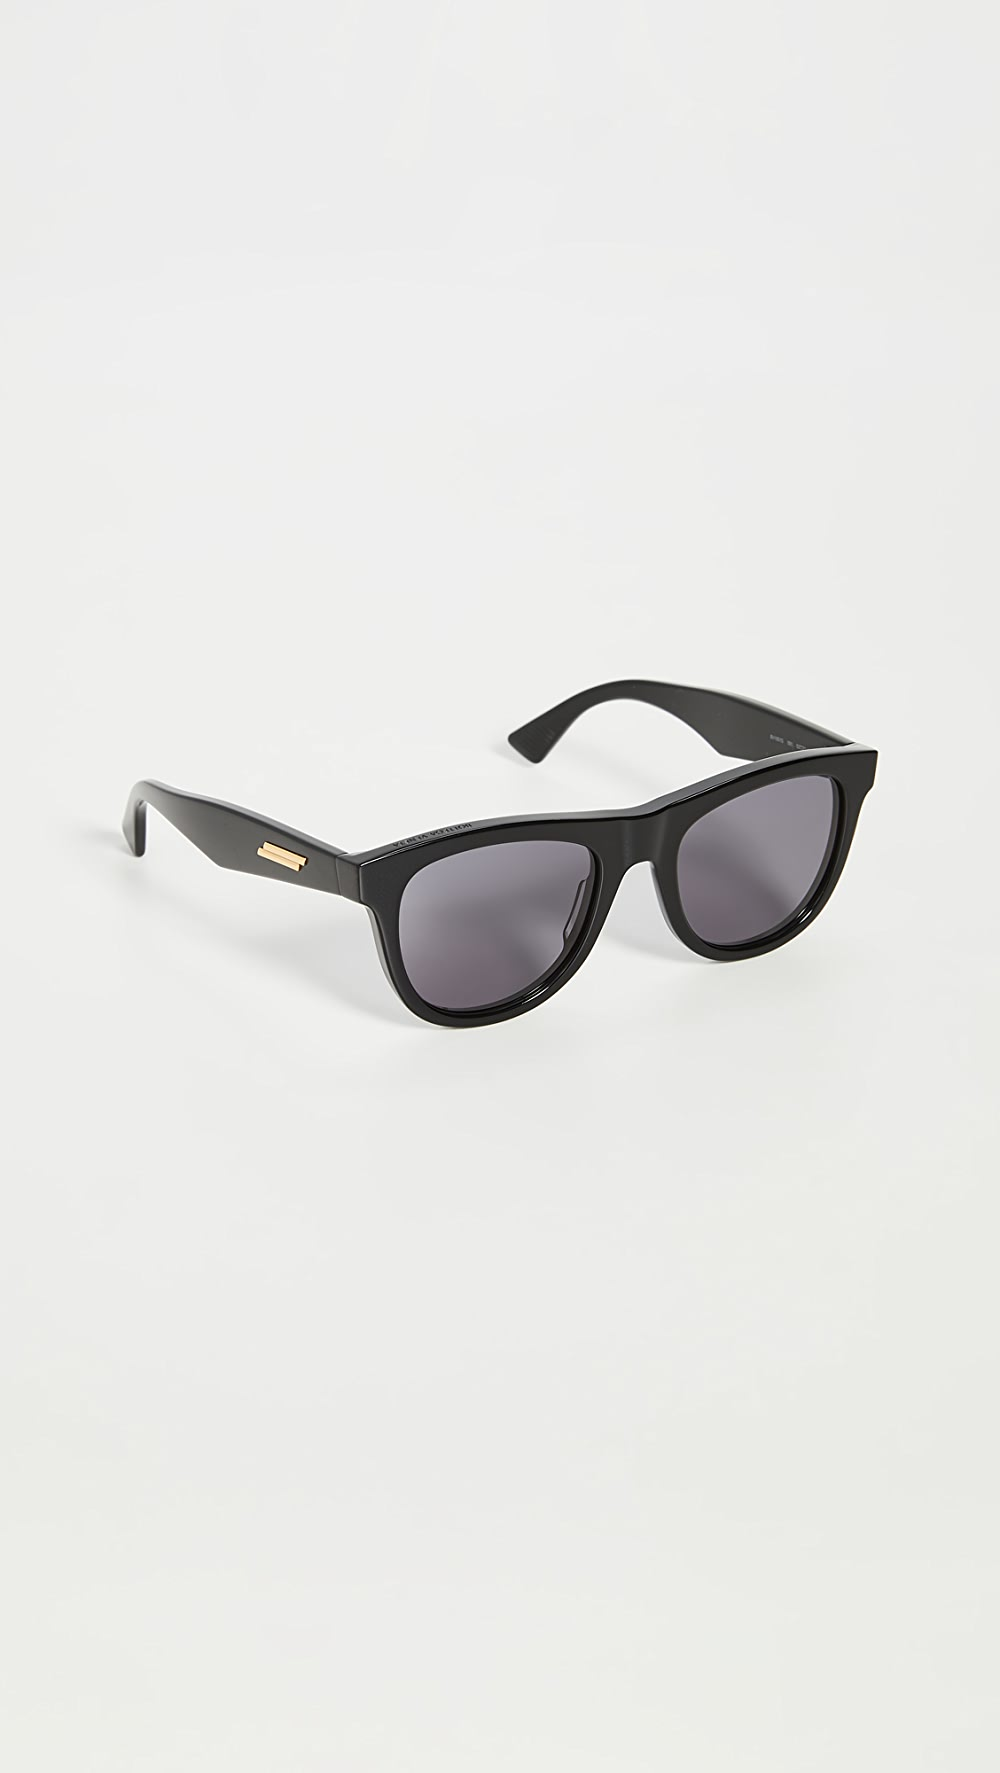 Able Bottega Veneta - Acetate Wayfarer Sunglasses For Sale